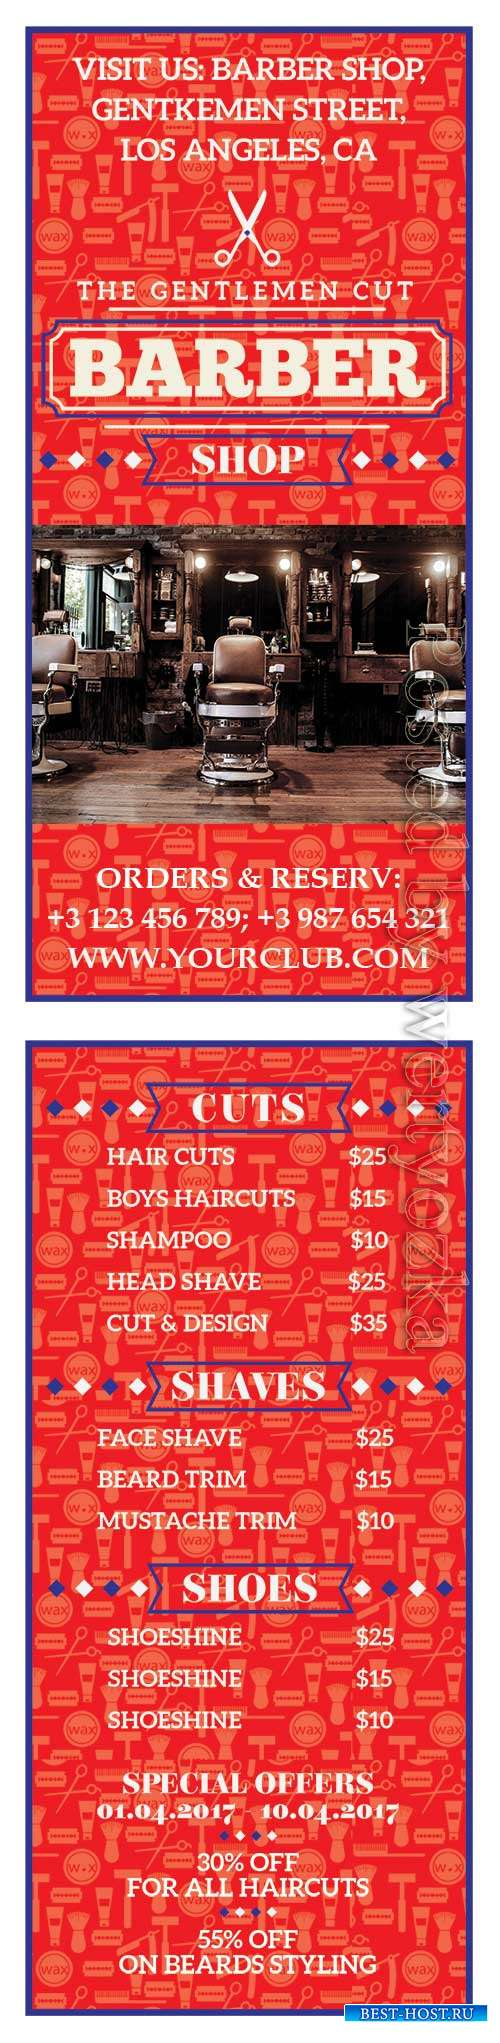 Barber shop psd flyer template